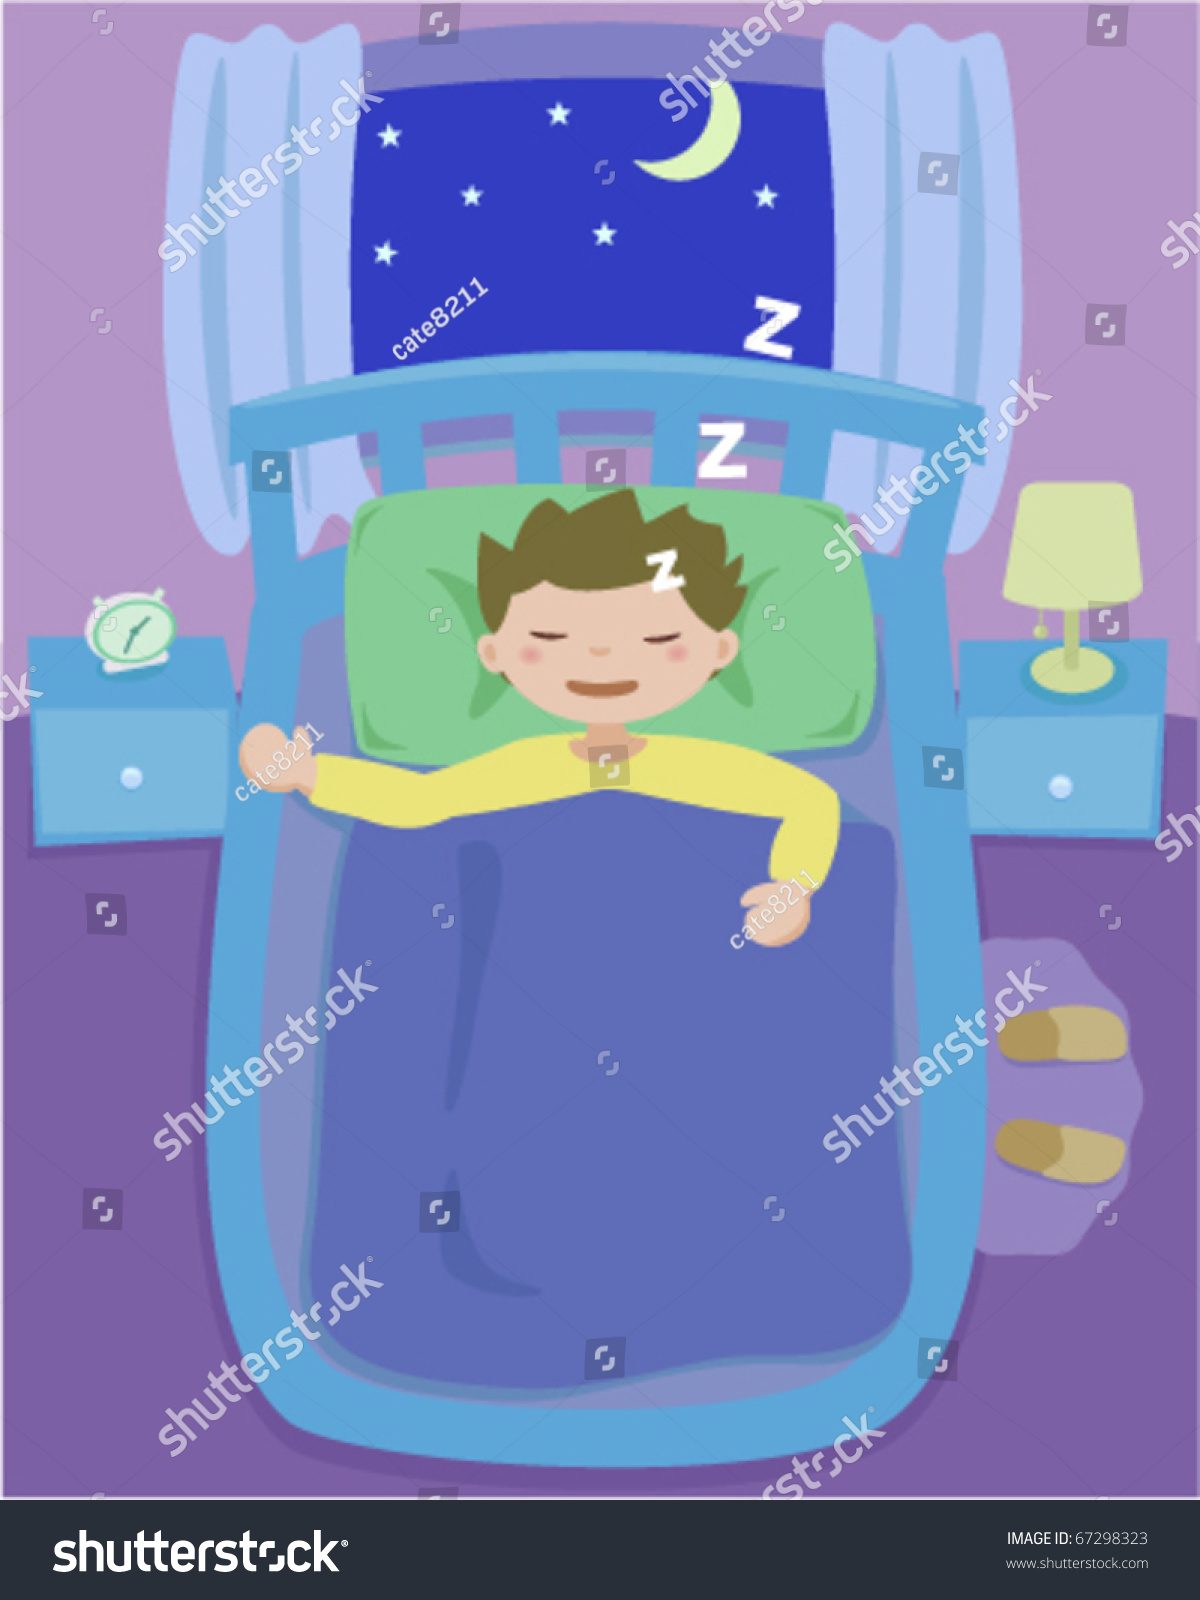 Bedroom at night time - Sleeping Boy On Bed In Bedroom At Night